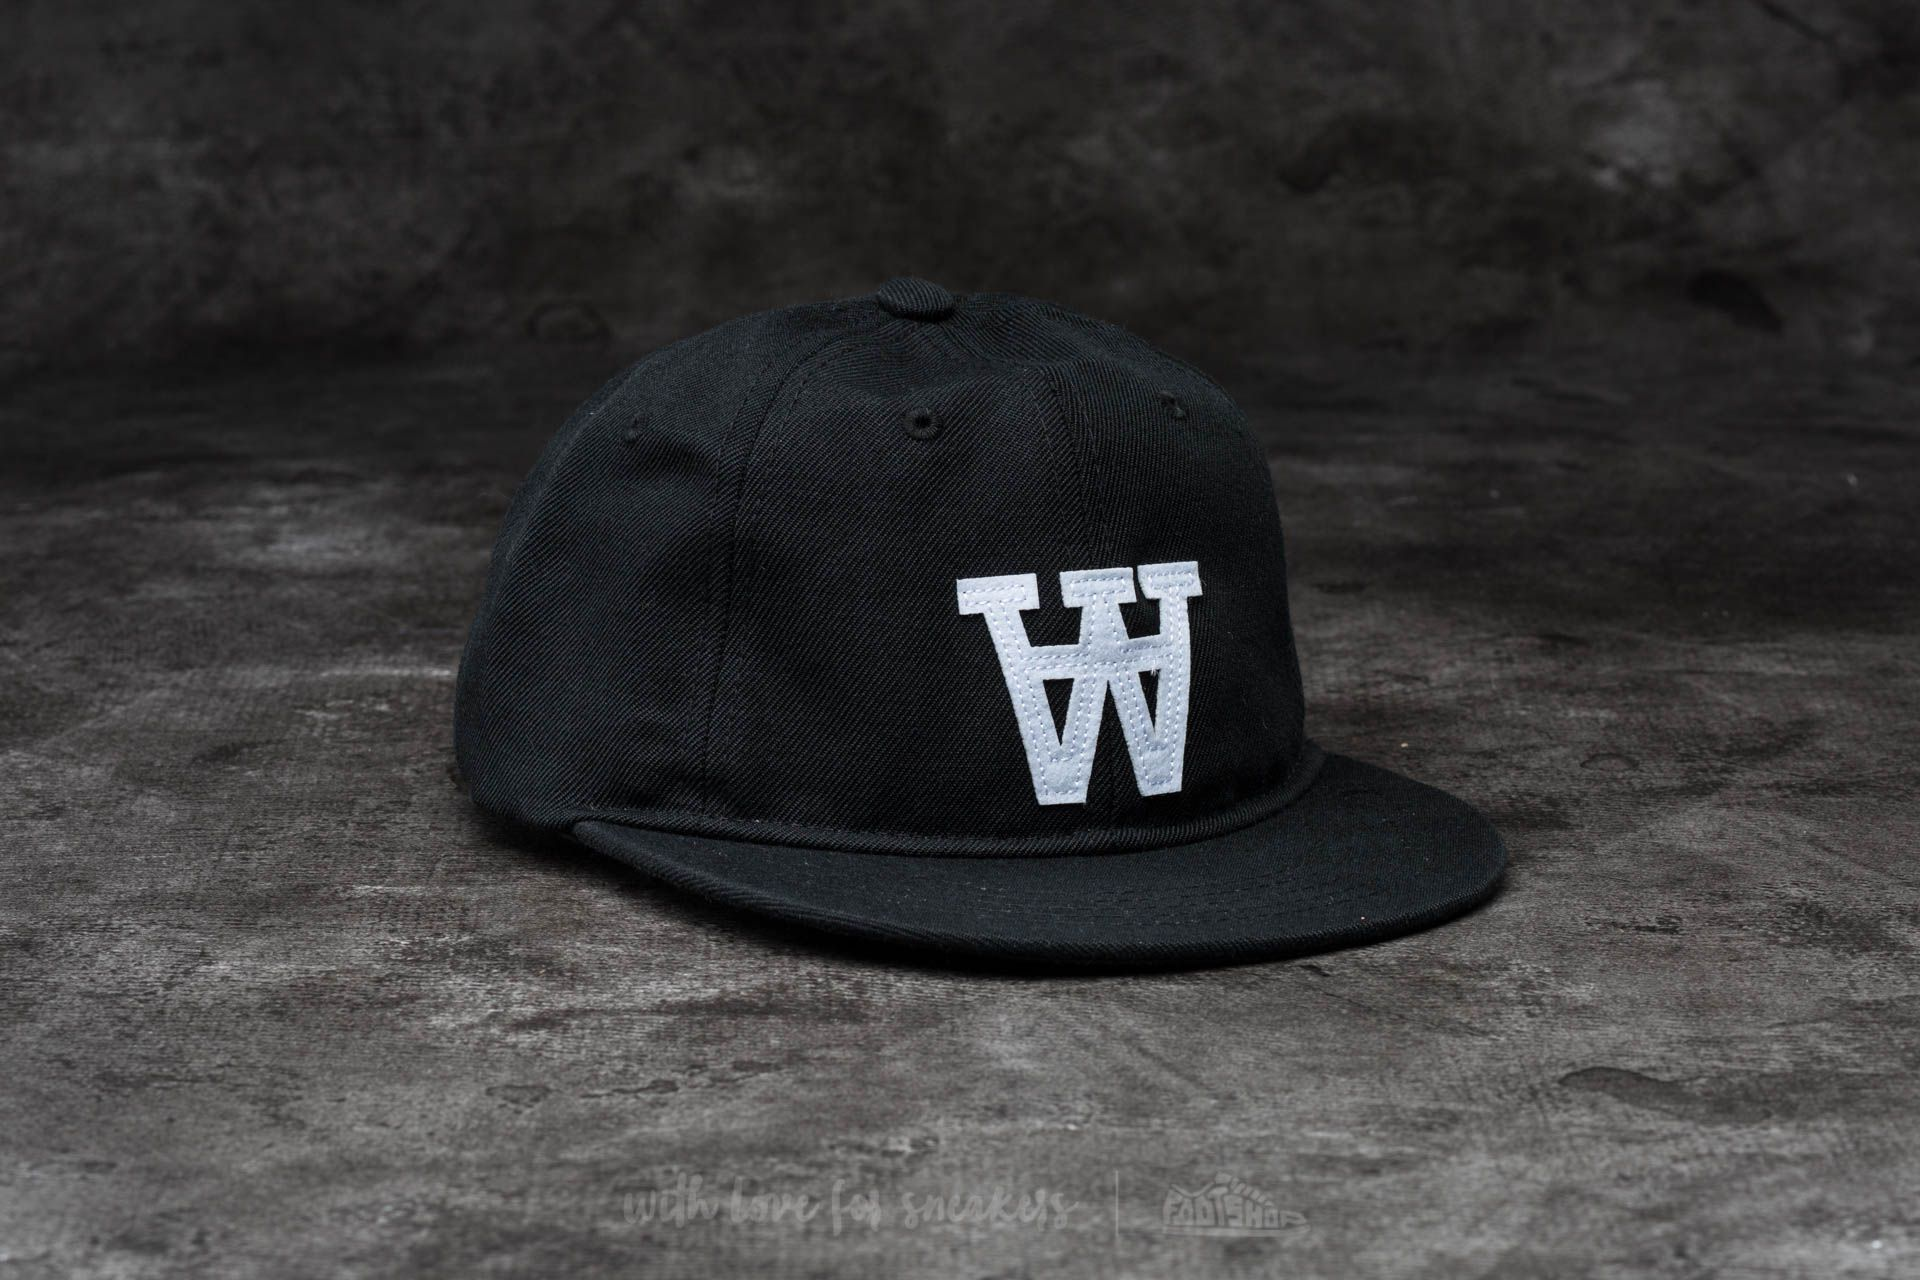 WOOD WOOD Baseball Cap Black - 13705